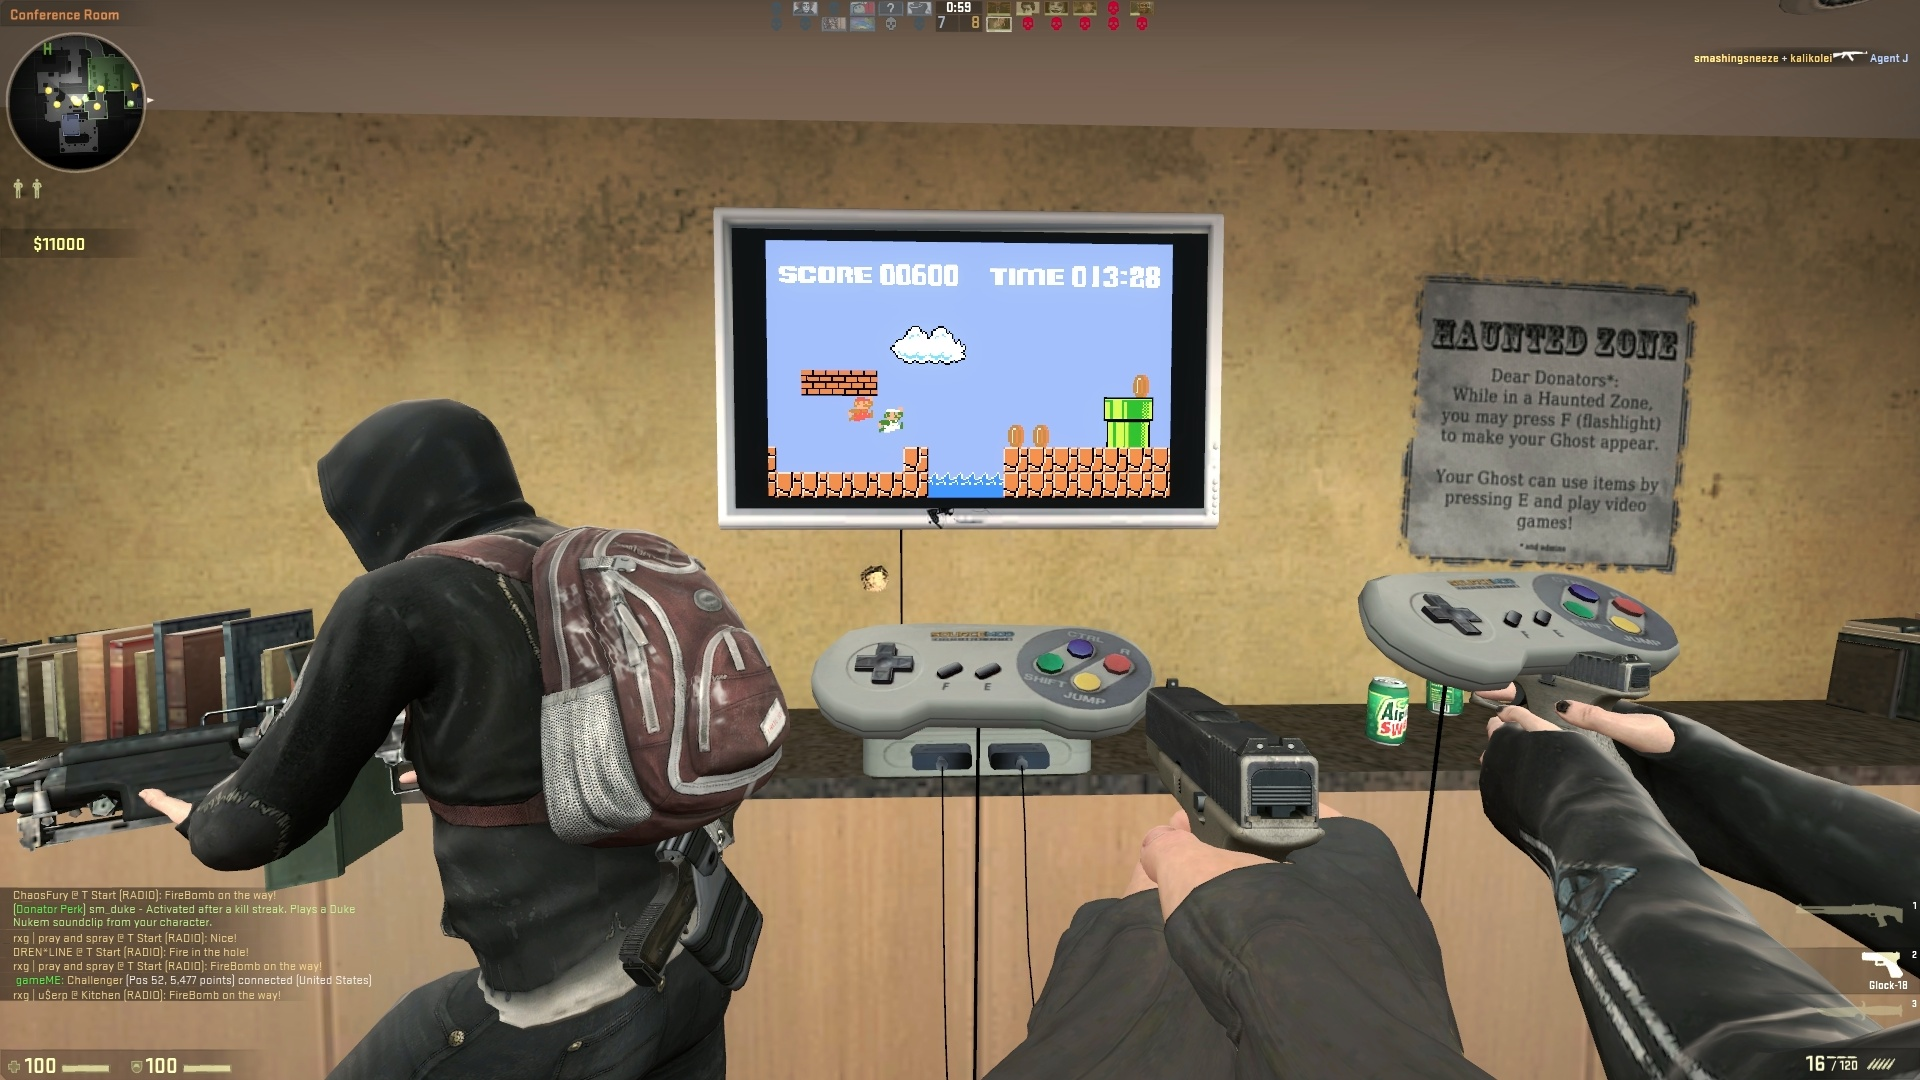 Playable console with